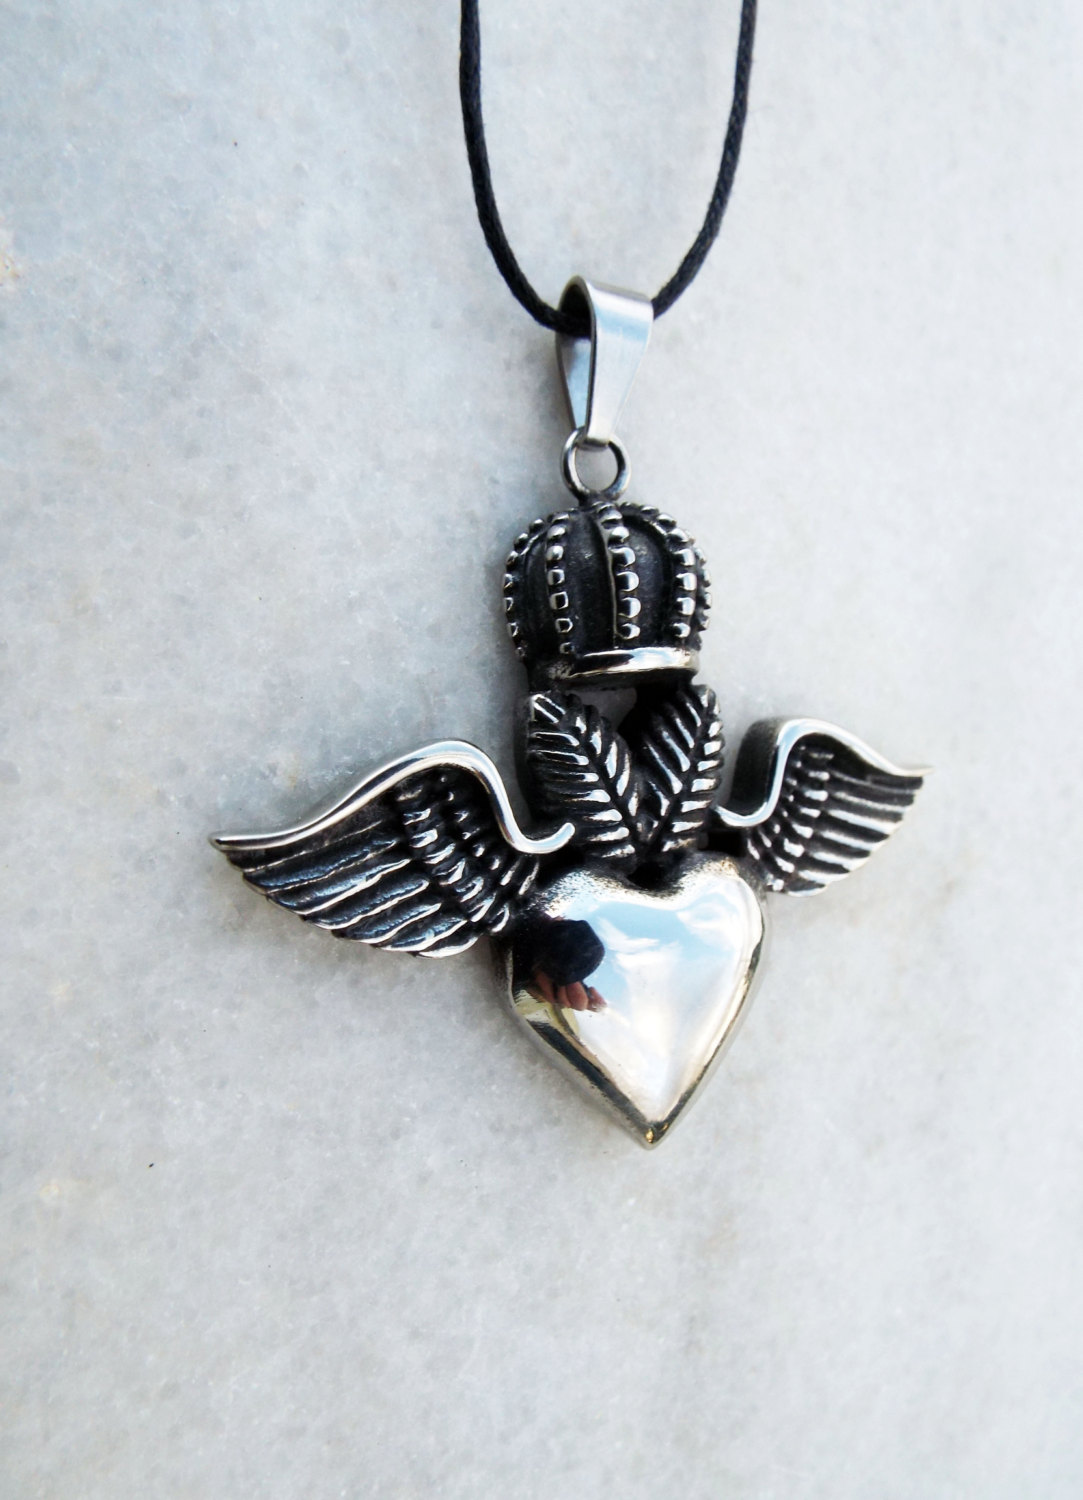 heart pendant crown claddagh angel wings necklace silver. Black Bedroom Furniture Sets. Home Design Ideas